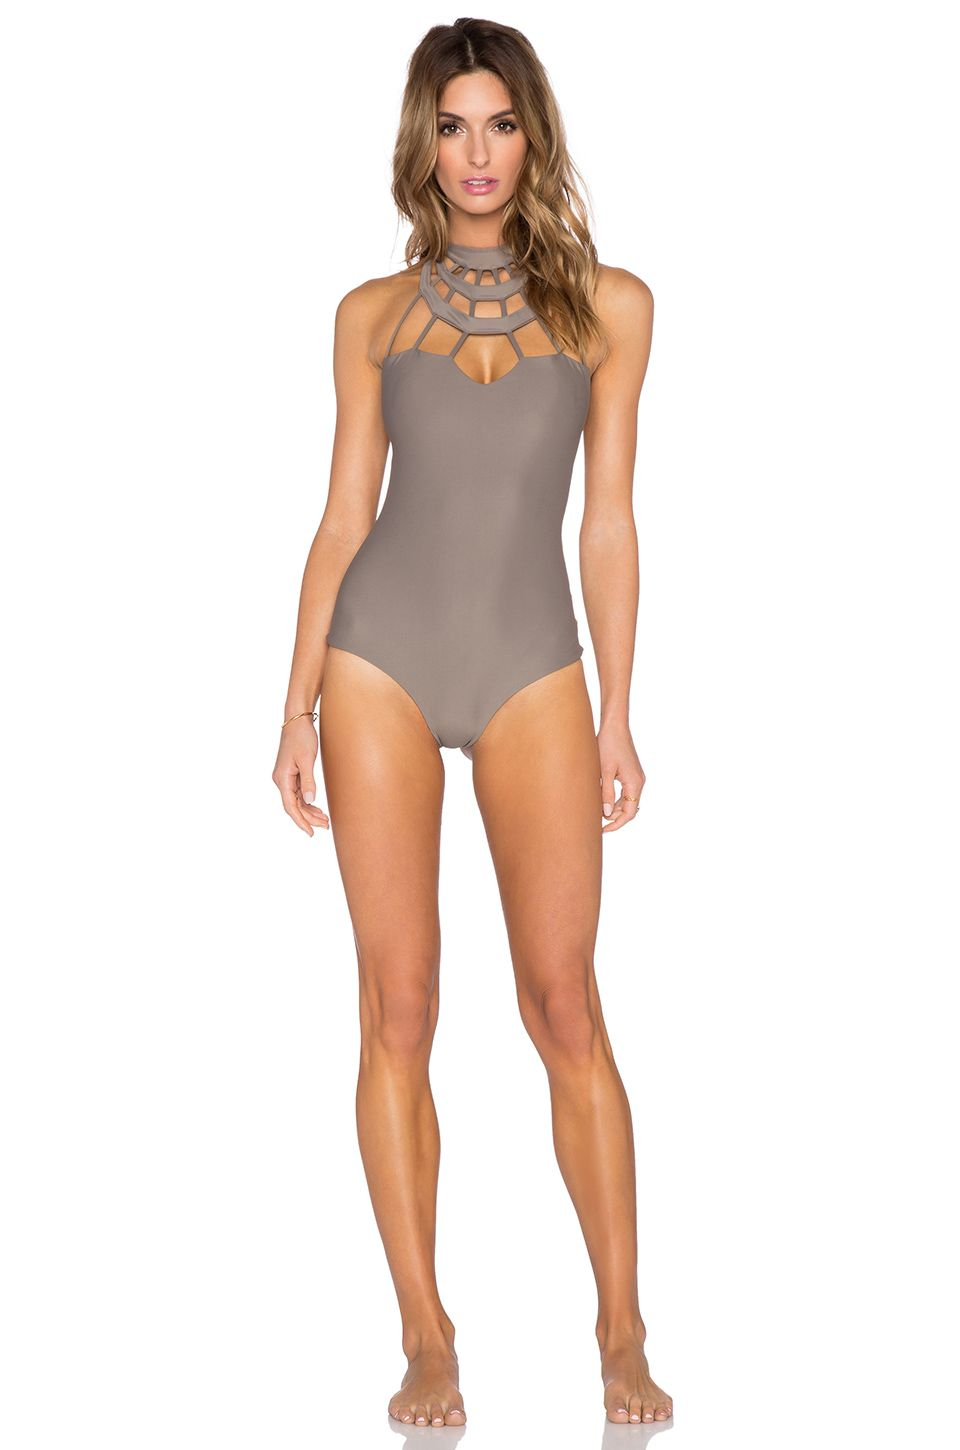 Issa De Mar Kenya One Piece Available At Revolveclothing Tribe